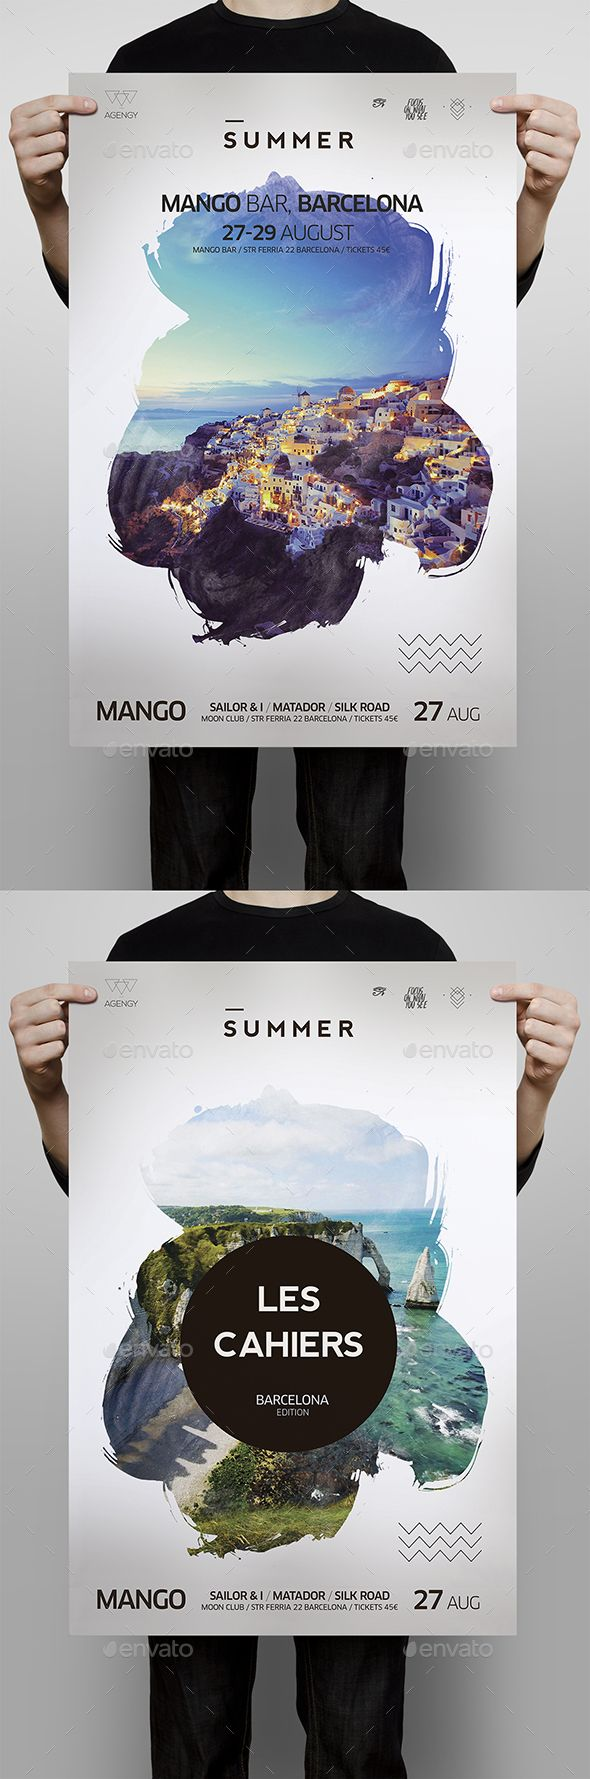 Summer Flyer Template PSD. Download here: graphicriver.net/… – best Graphic Design